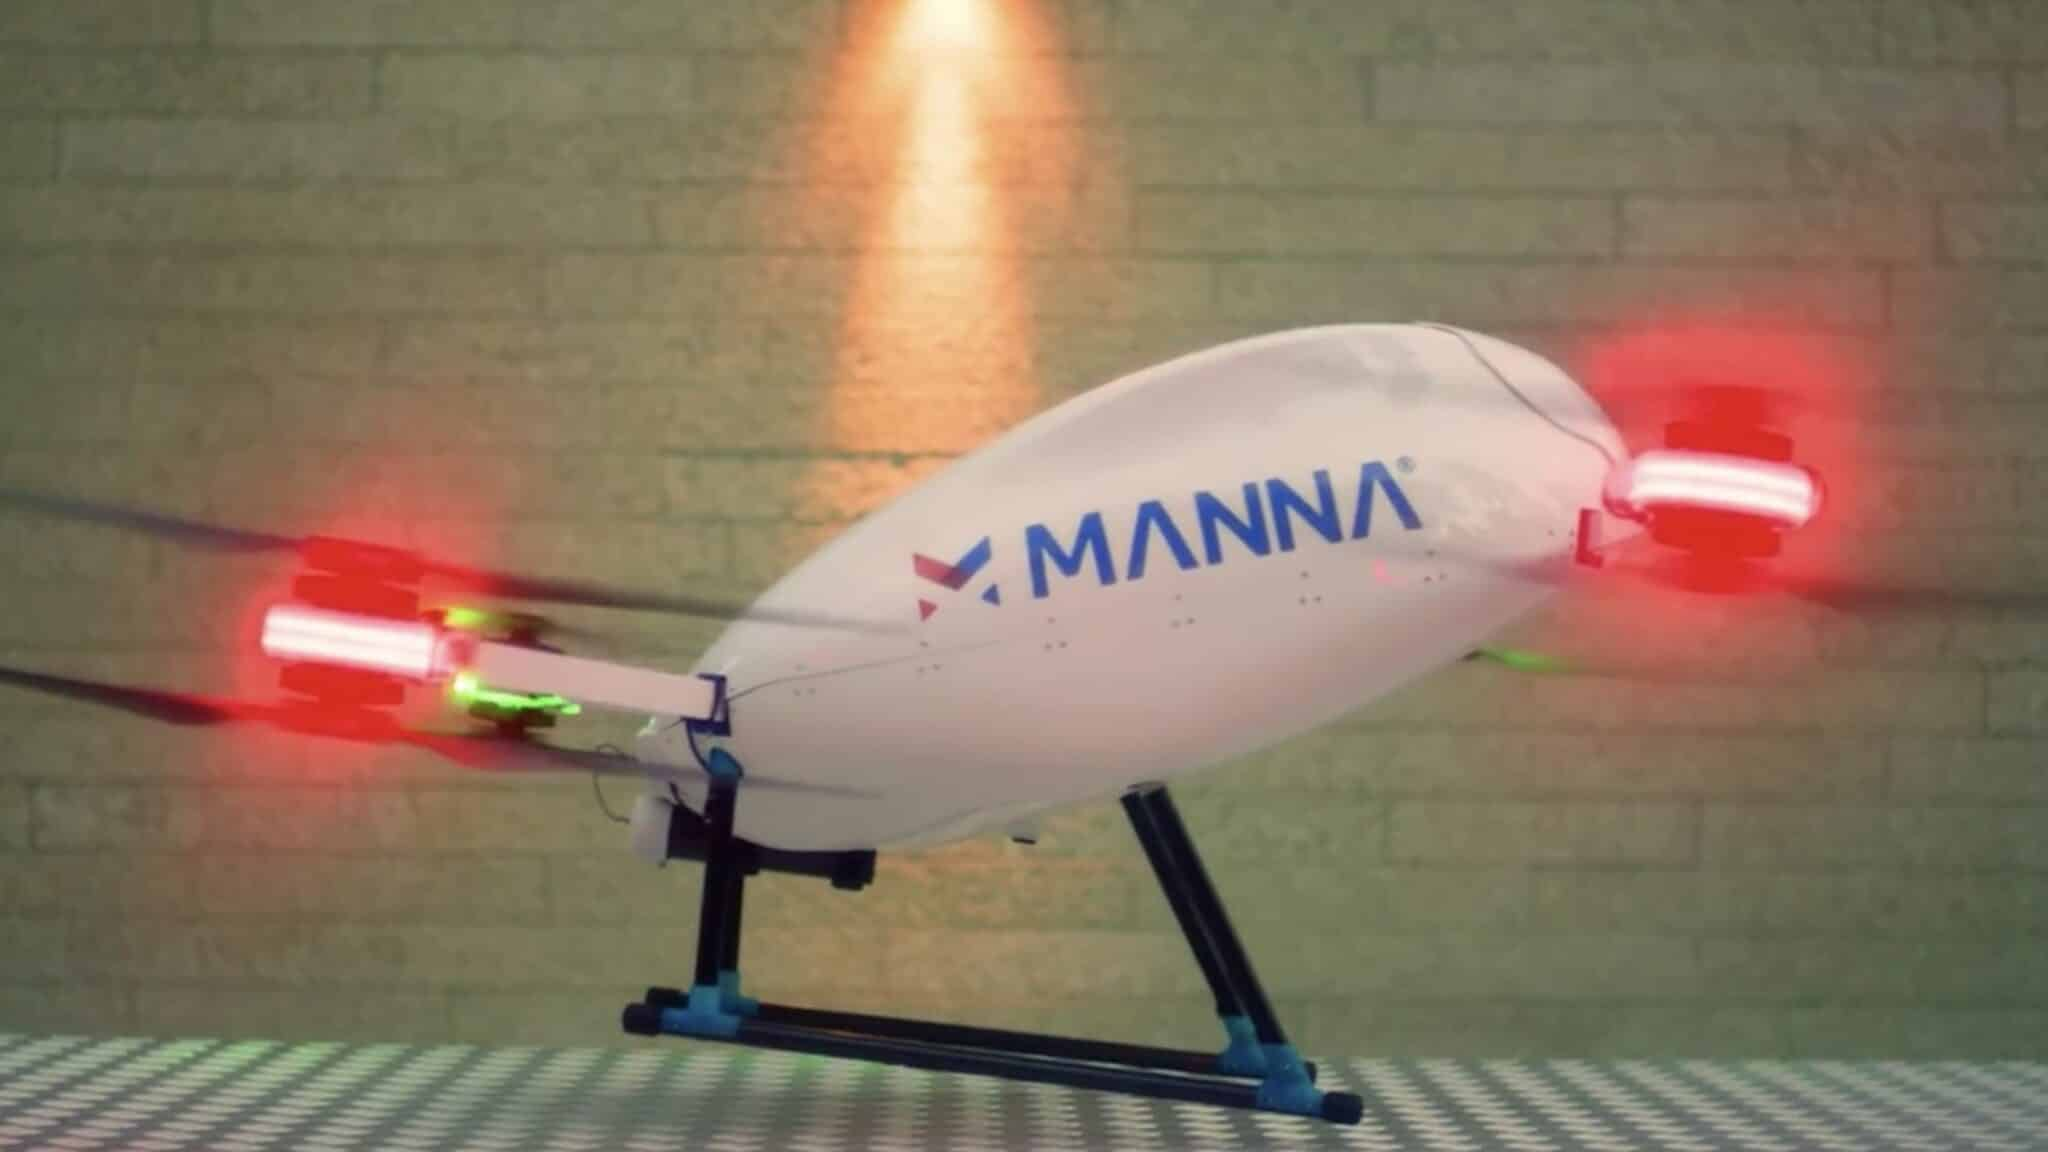 Irish drone startup Manna Aero delivers medicines to self-isolated people during Coronavirus crisis